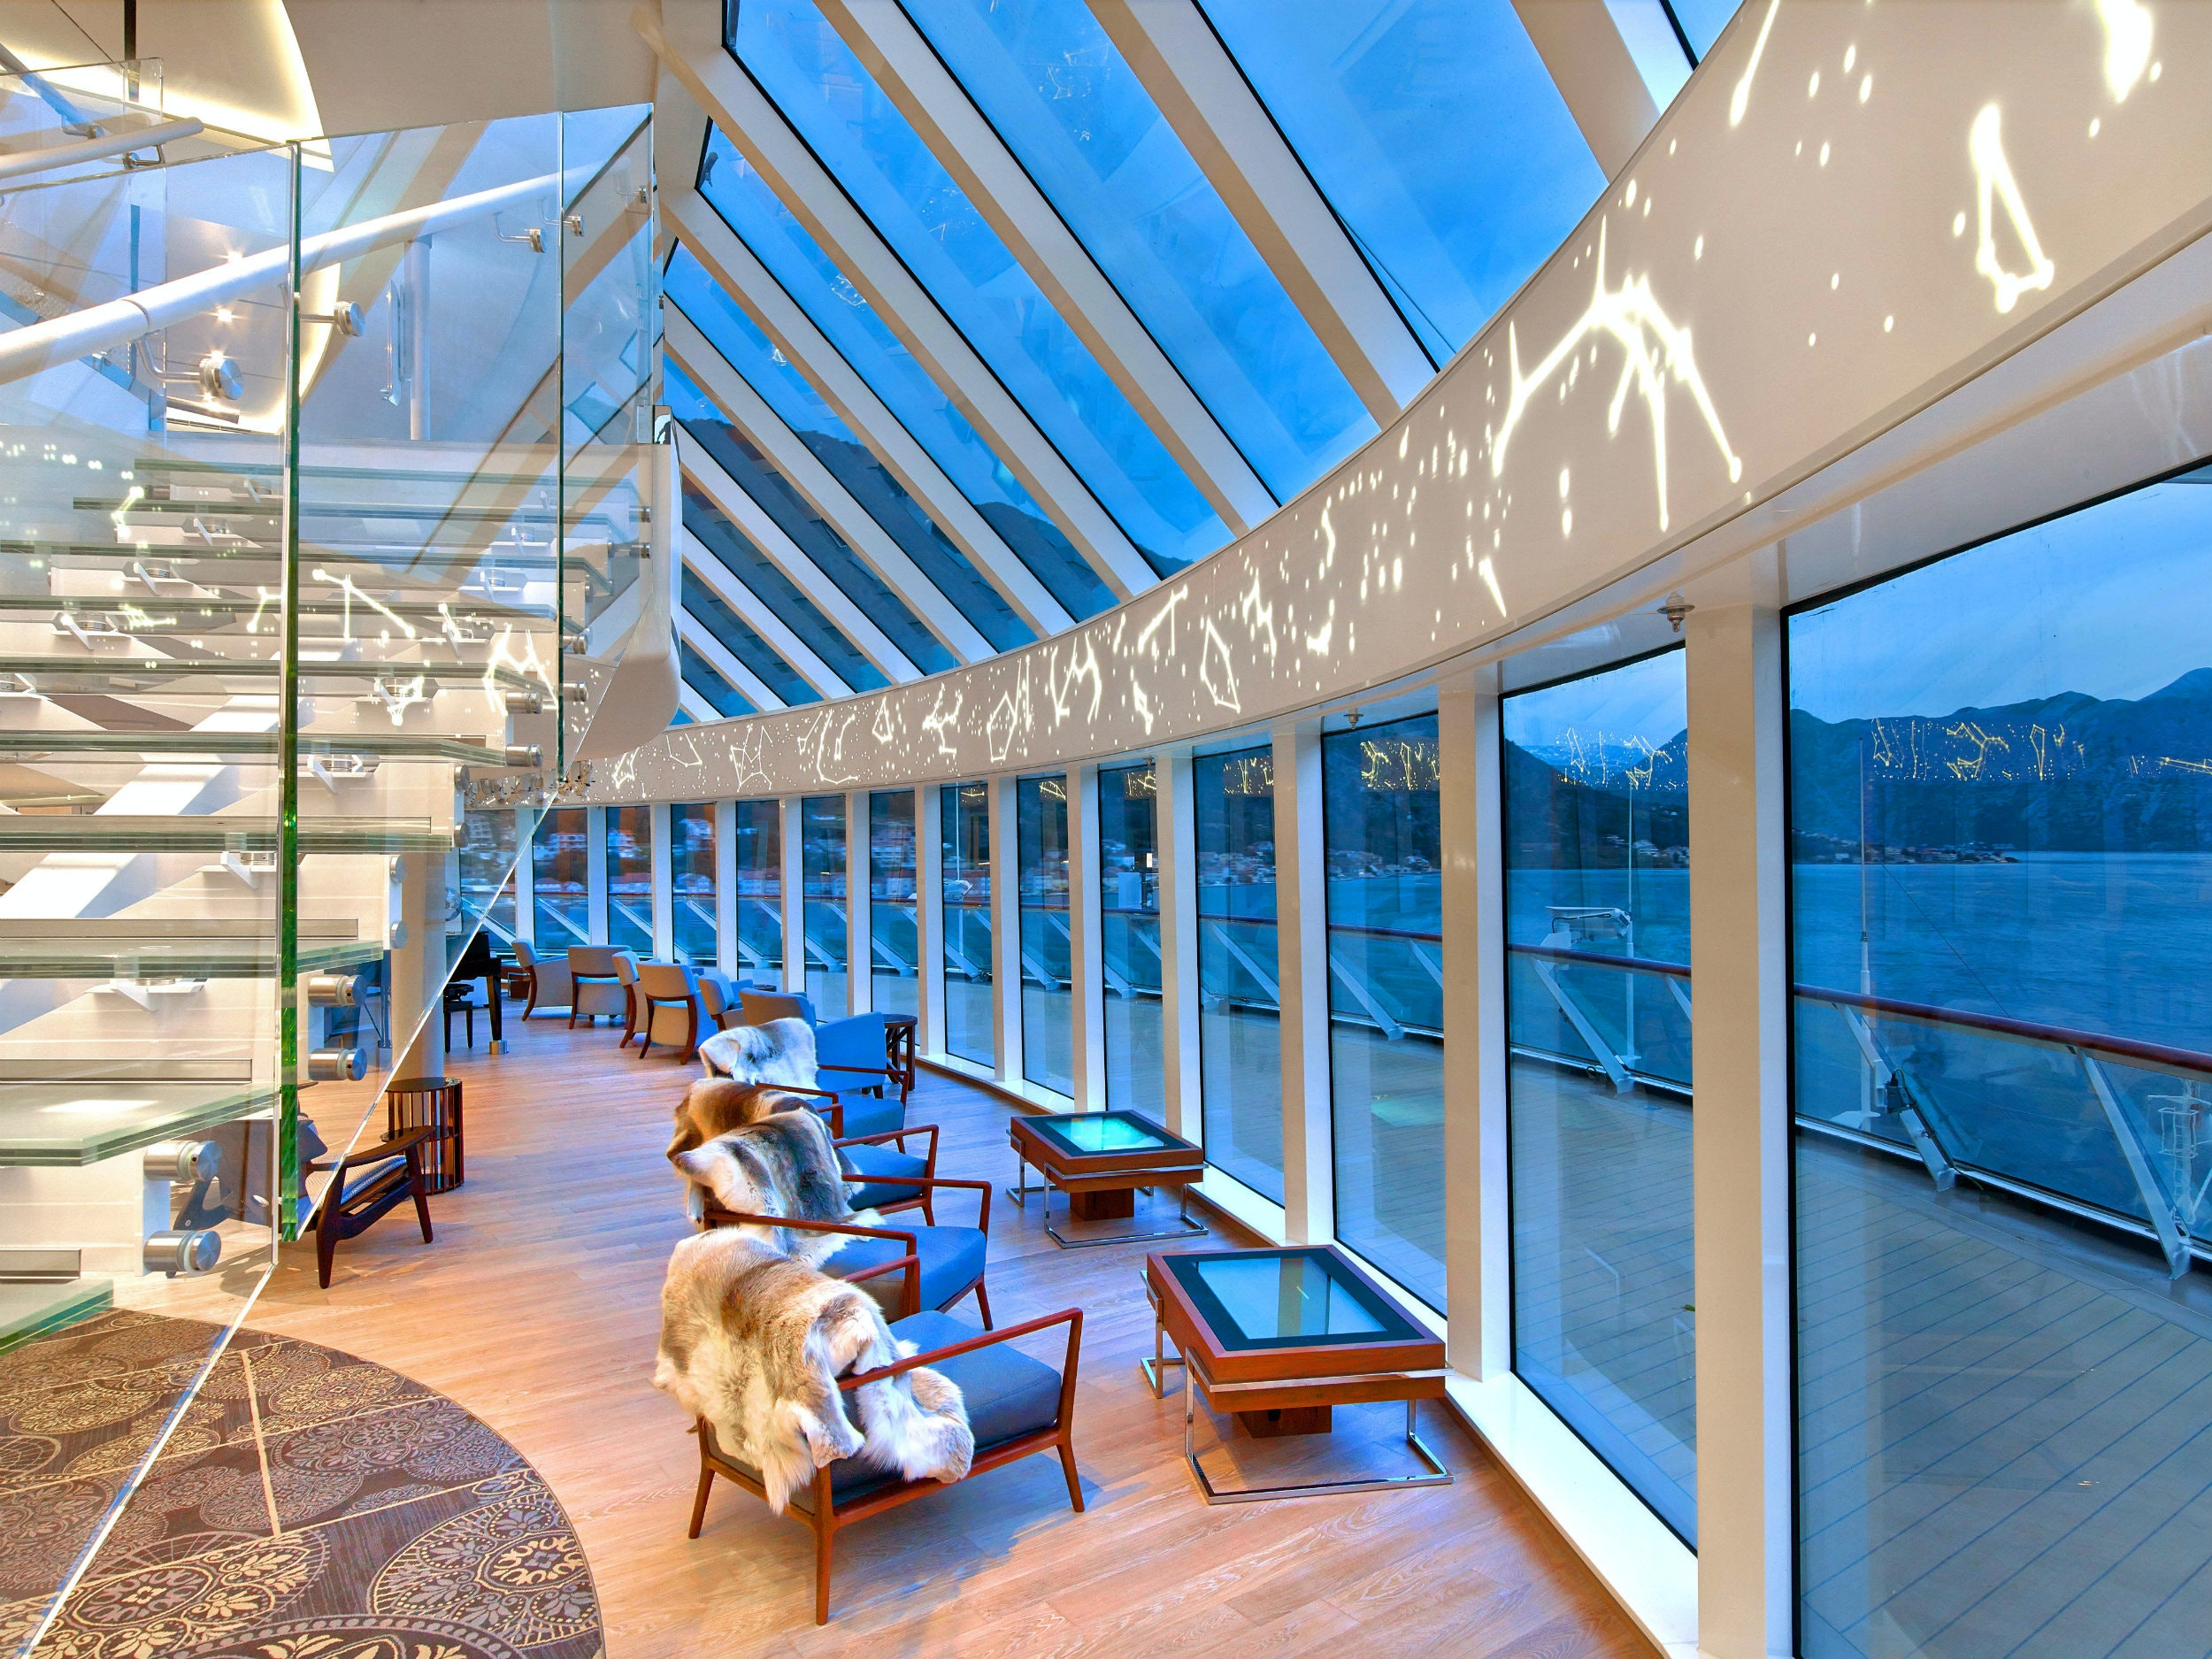 The views complement the style found in Viking's sophisticated Explorers' Lounge.